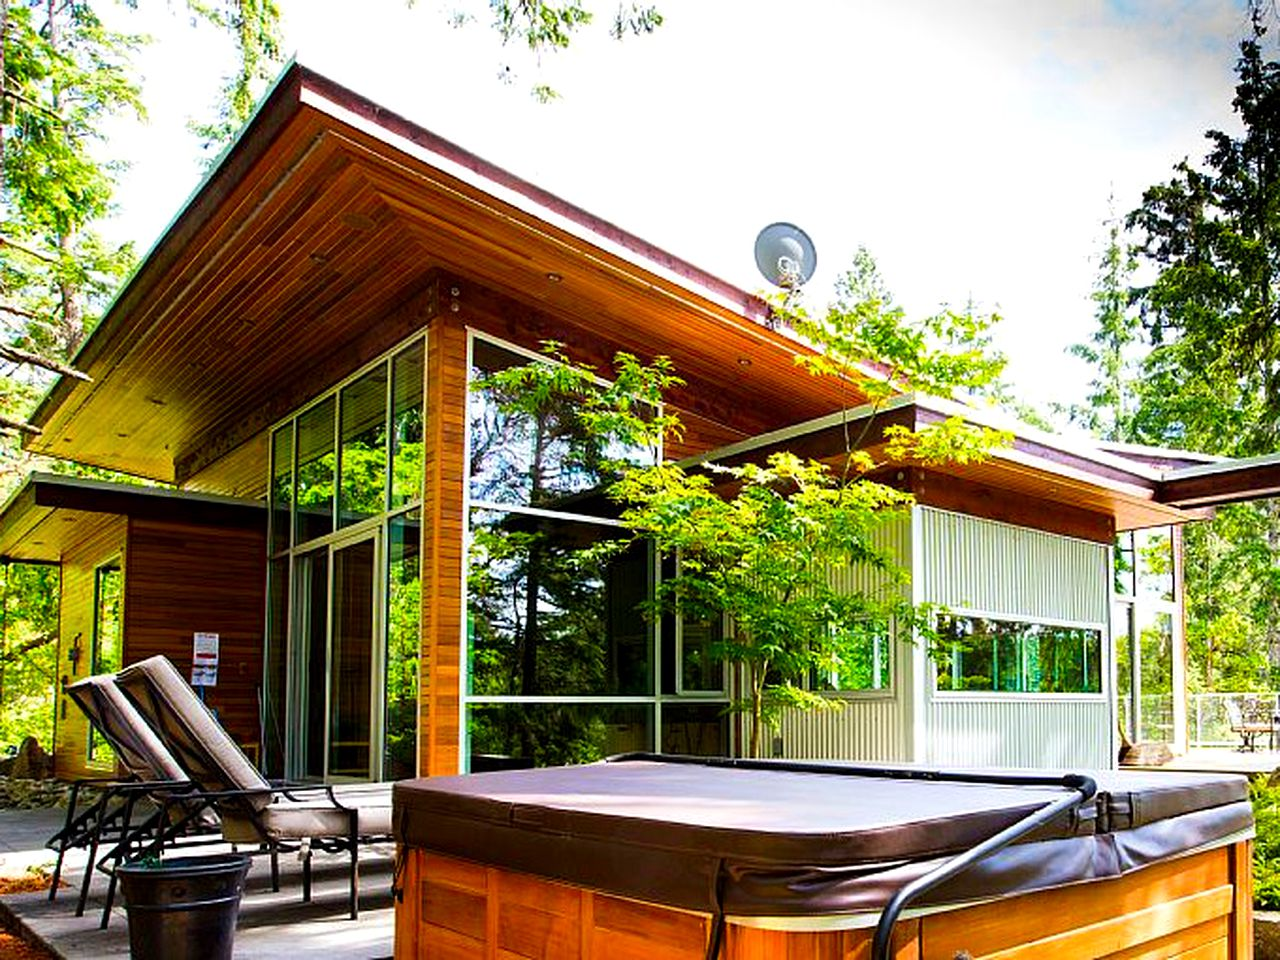 Luxury property in the woods with wooden panels is the perfect option for glamping (BC)